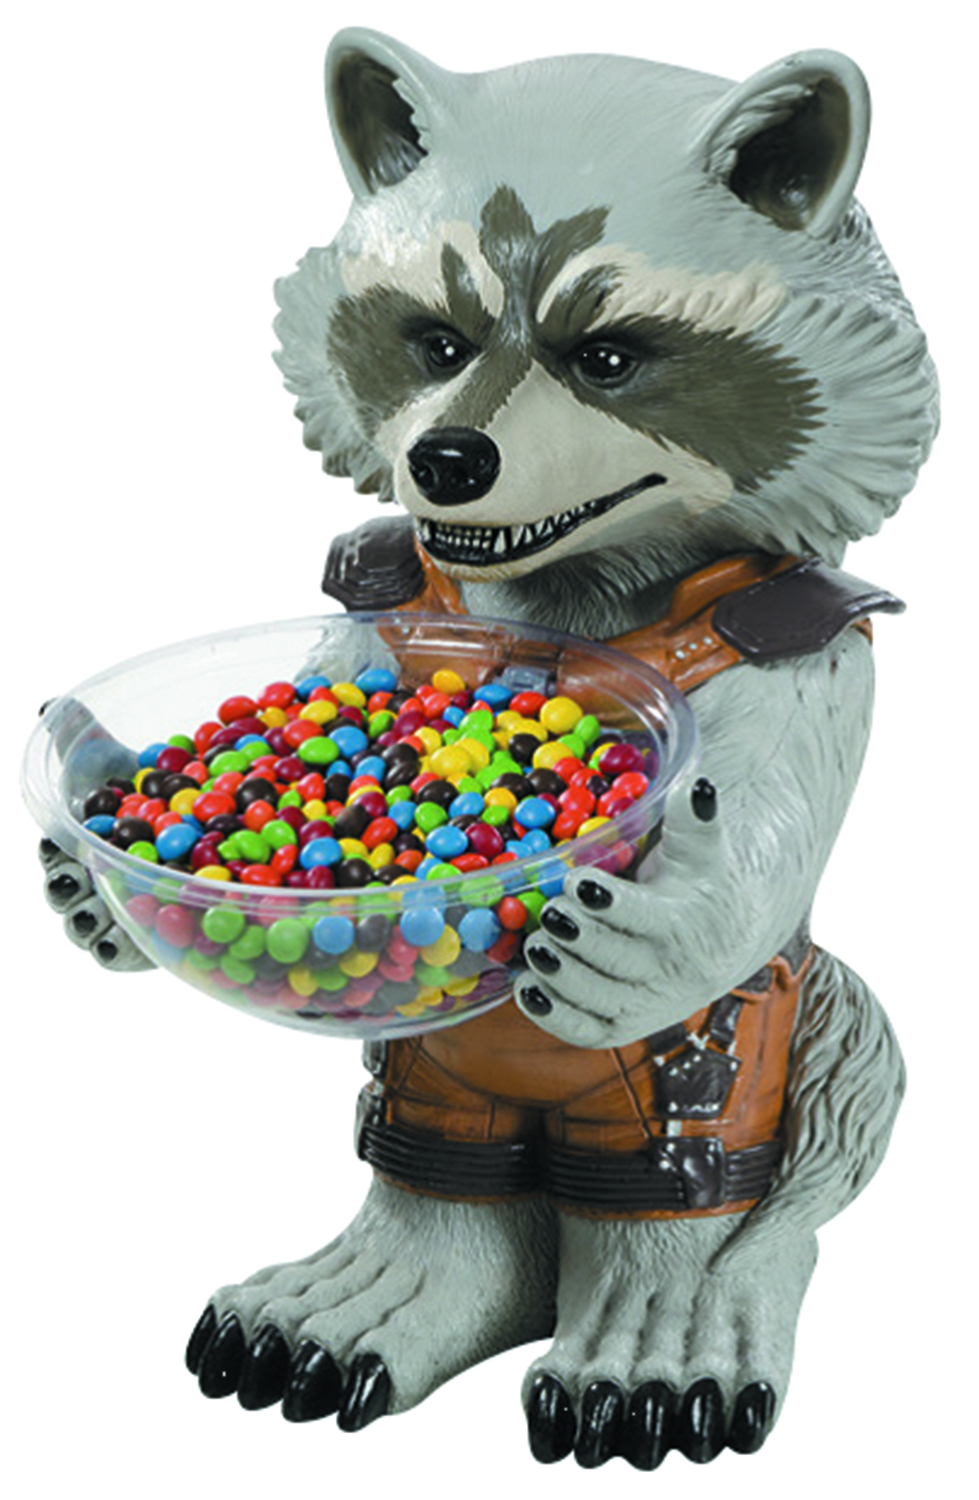 MARVEL HEROES ROCKET RACCOON CANDY BOWL HOLDER